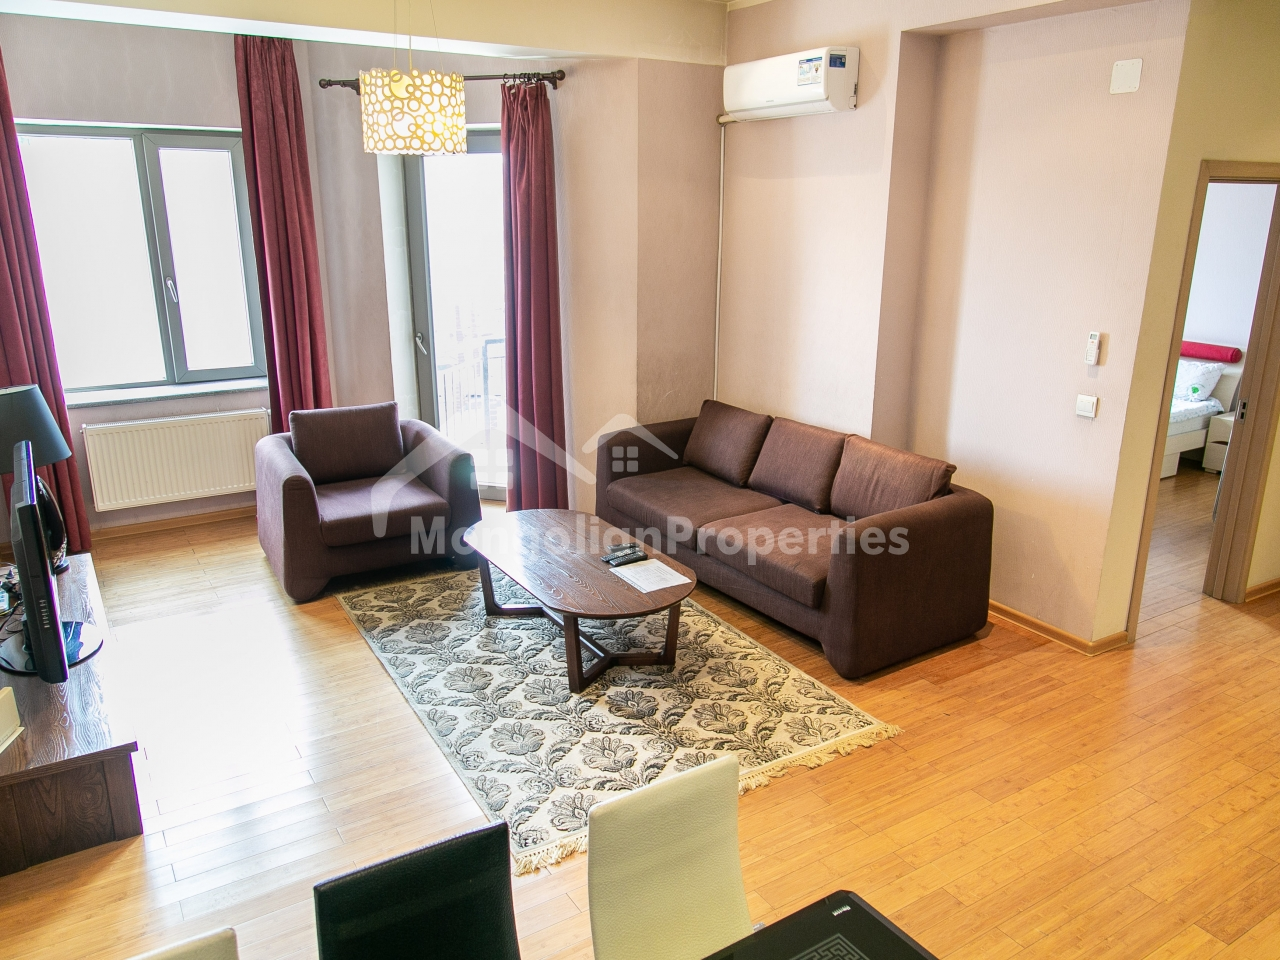 FOR SALE: 2-BEDROOM APARTMENT AT REGENCY RESIDENCE